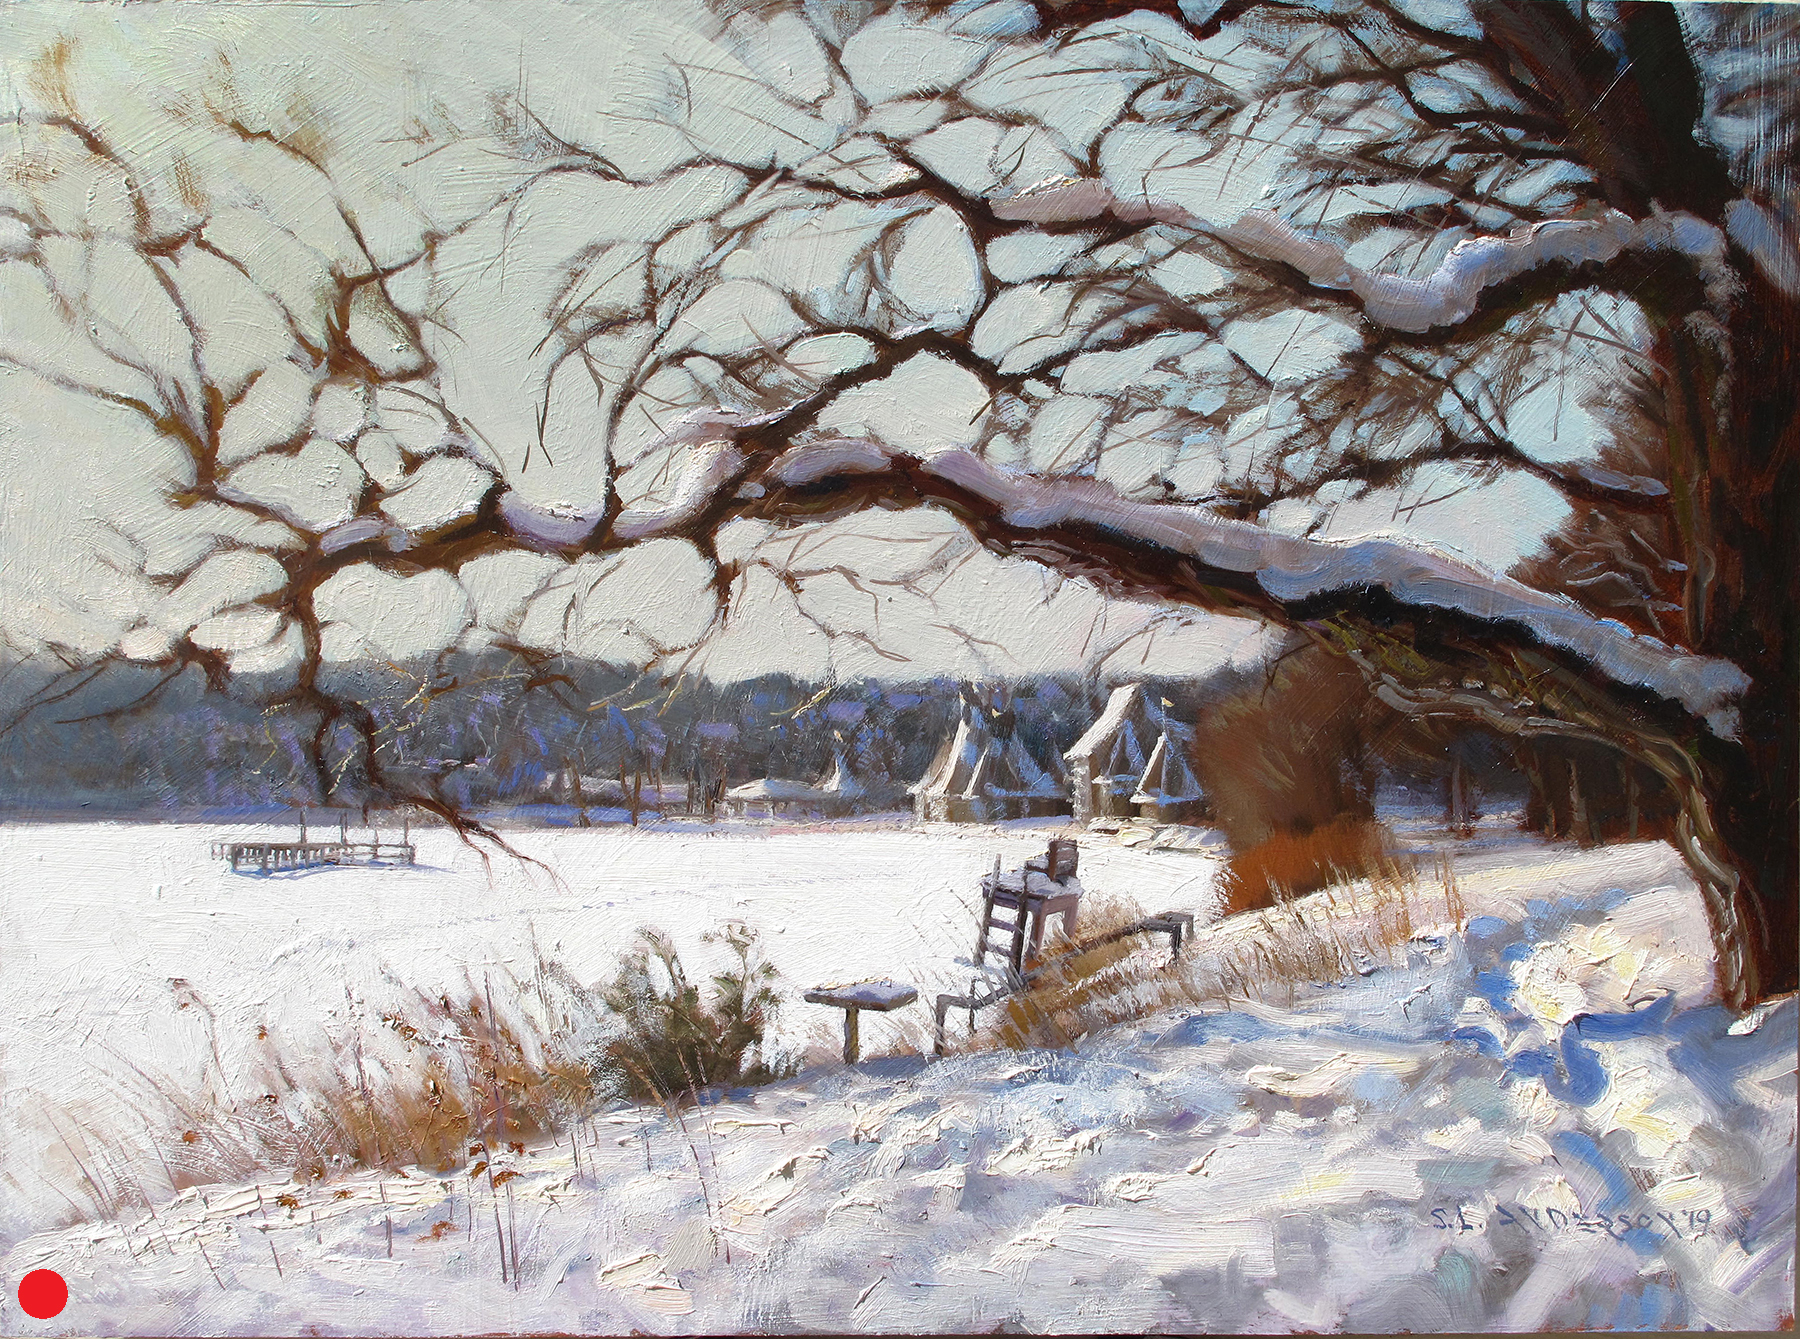 Winter Oak, Lake Harriet  (SOLD) 18 x 24 oil on panel  Studio painting from a small 8 x 10 panel created on location. Many impressively large branches cantilever from these old oaks, extending out across the walking path near Lake Harriet's north beach. I had to sit low, in the snow, in order to see the bandshell in the space between the branch and the lifeguard chair. #koldkeester